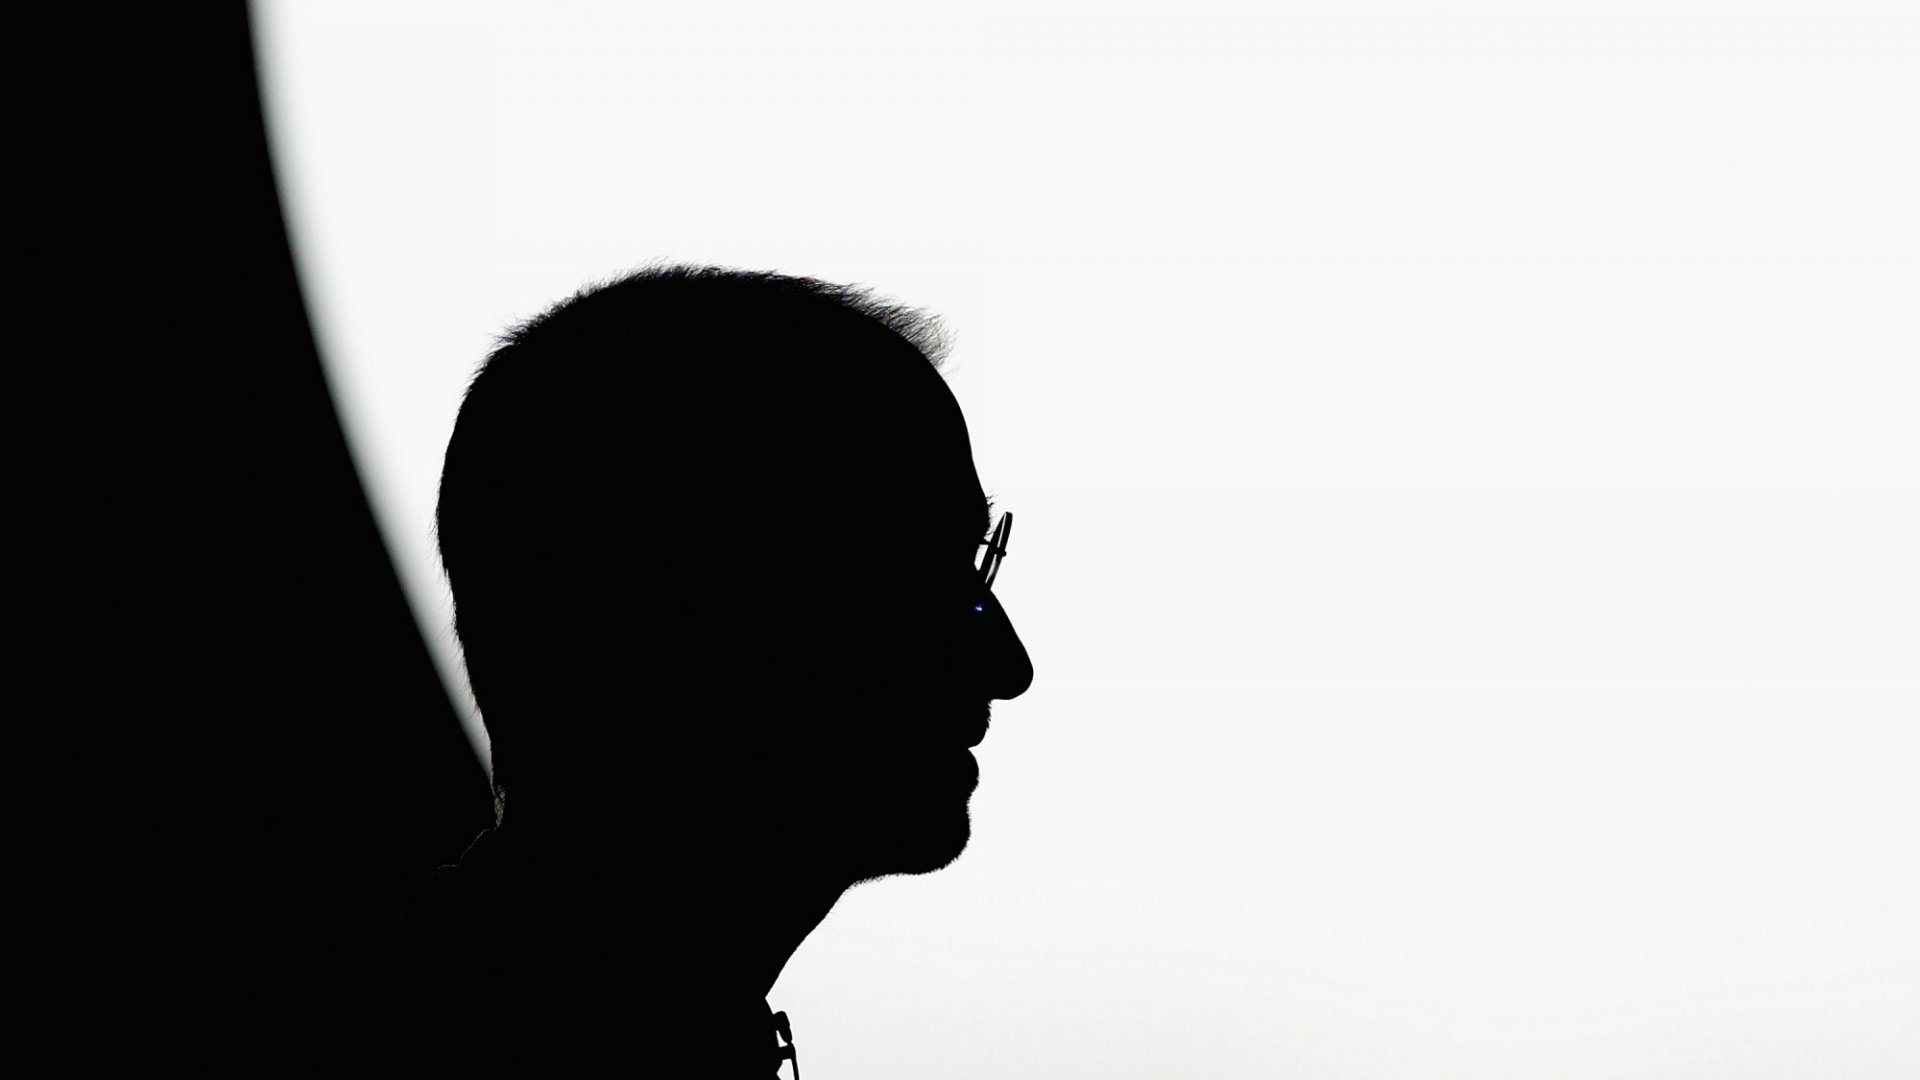 History-Changing Entrepreneurs Like Bill Gates and Steve Jobs Are ...